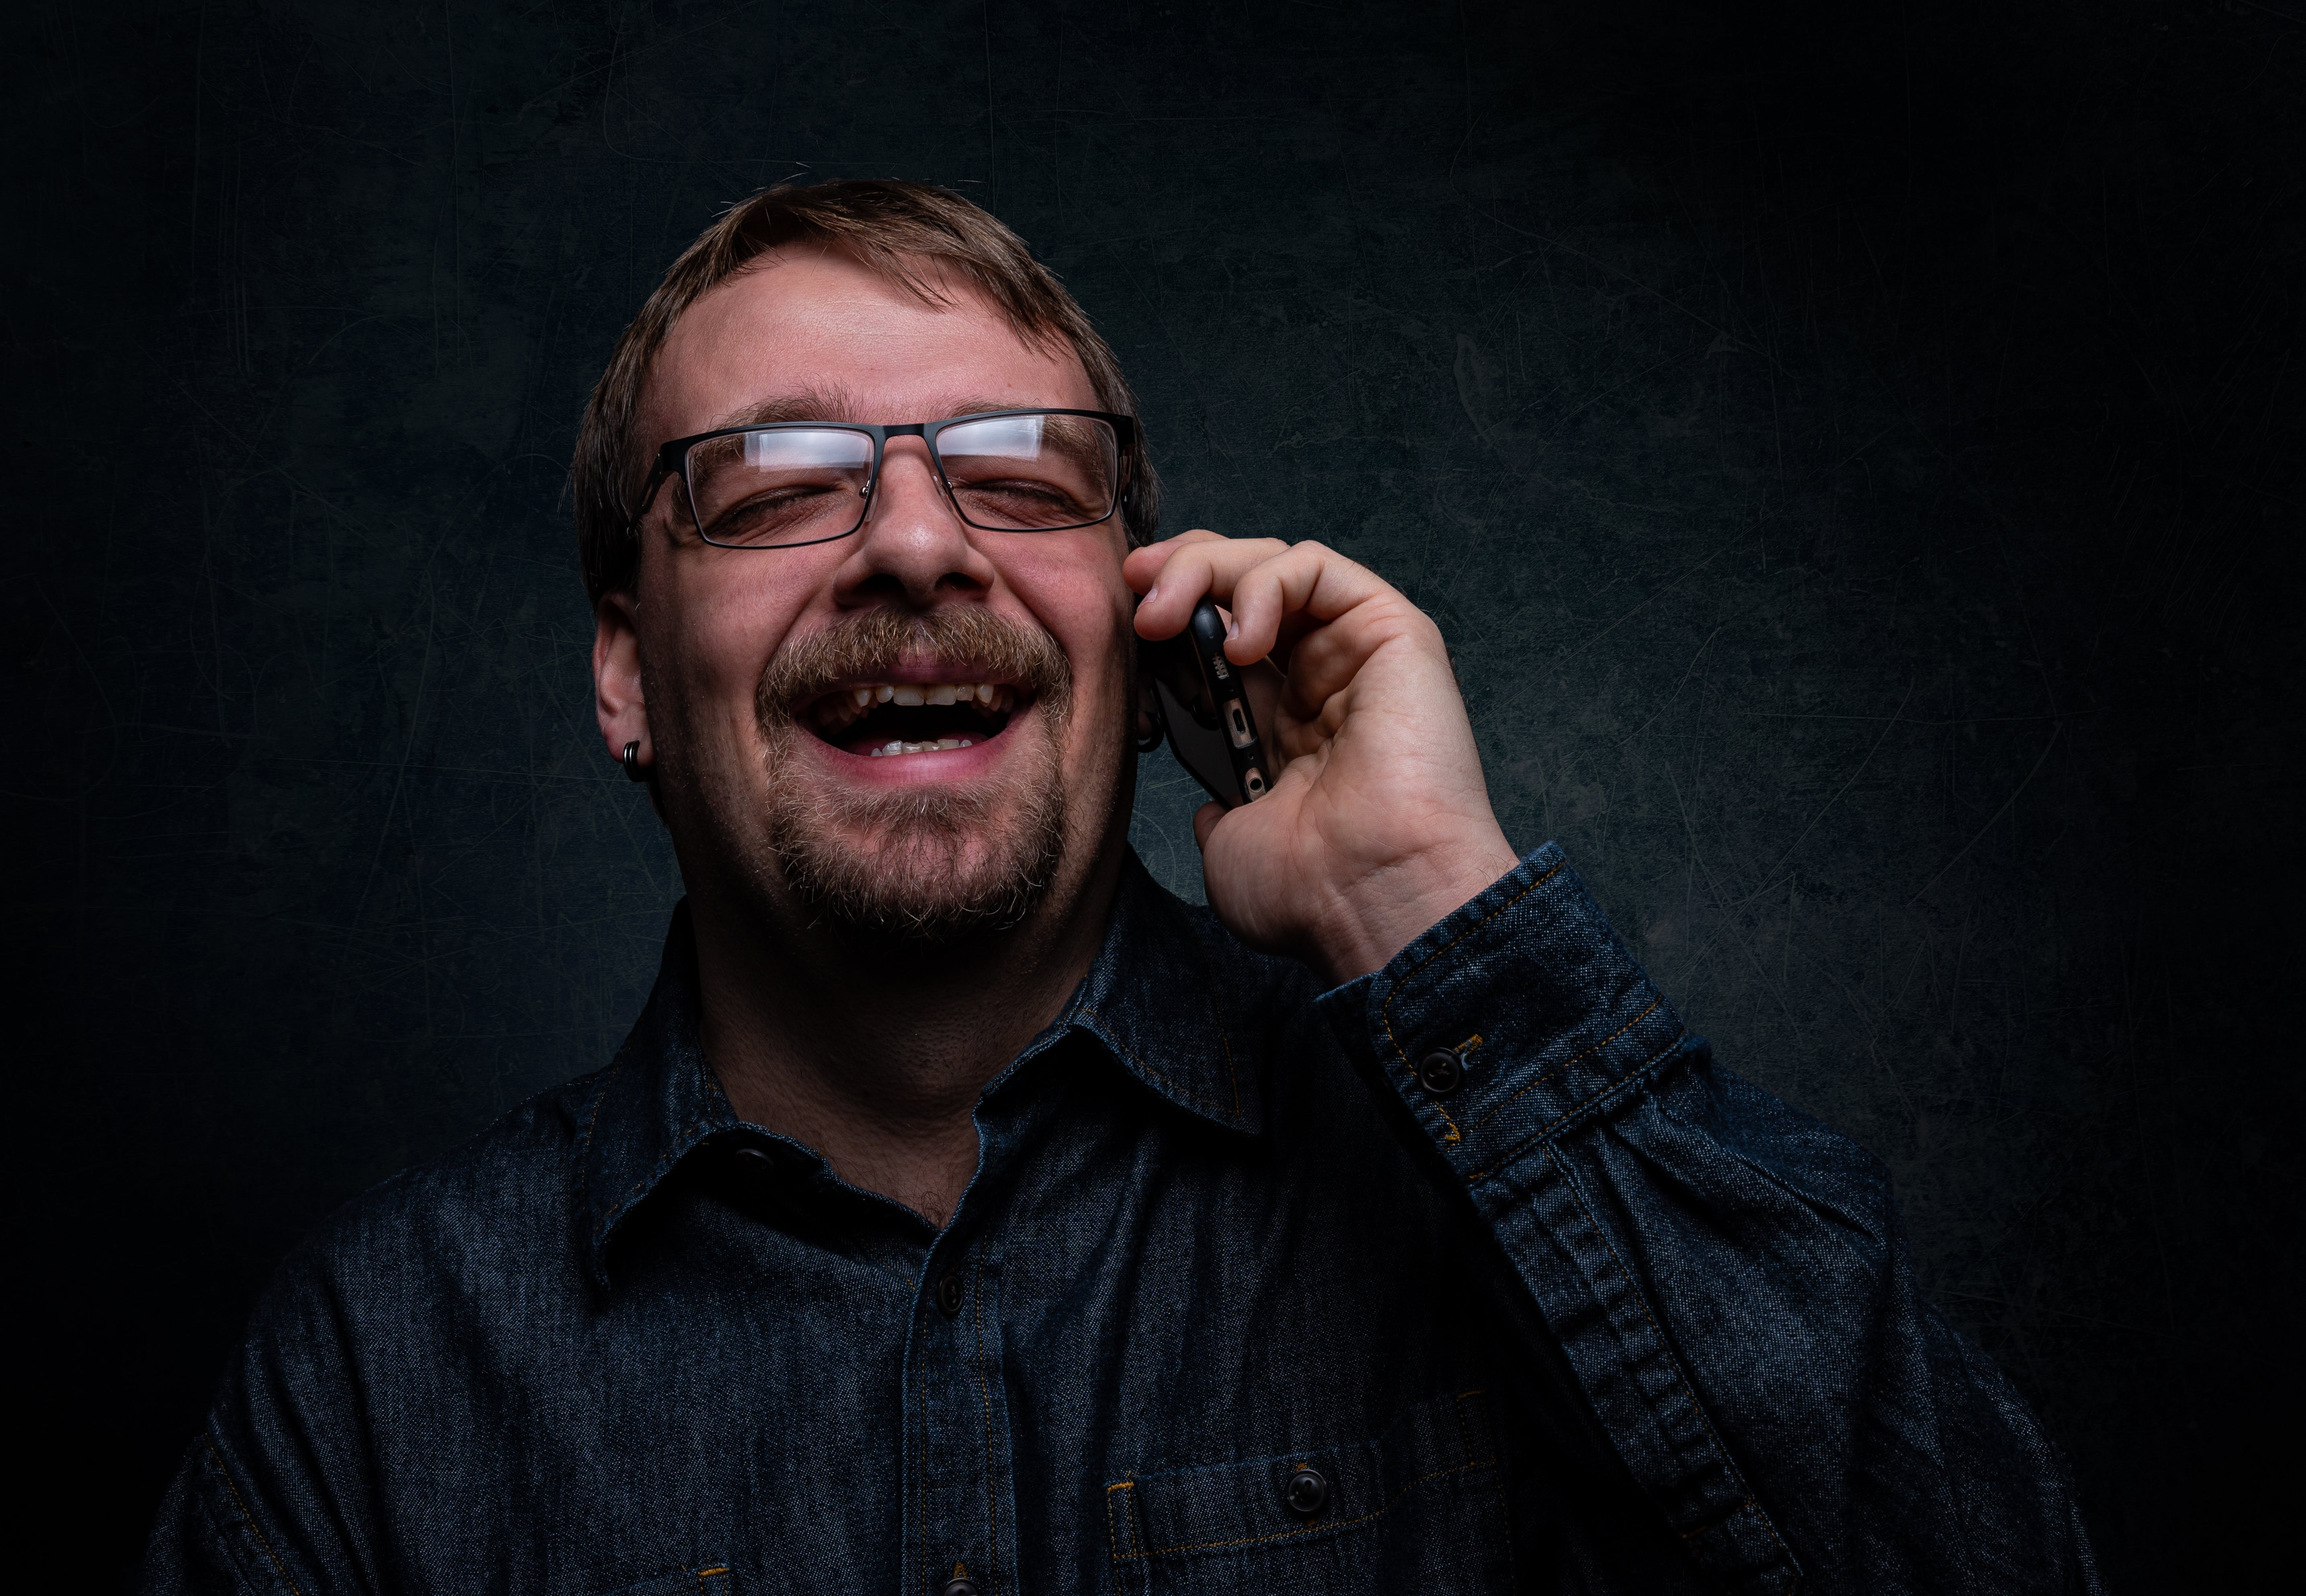 Man Laughing While Using Cellphone